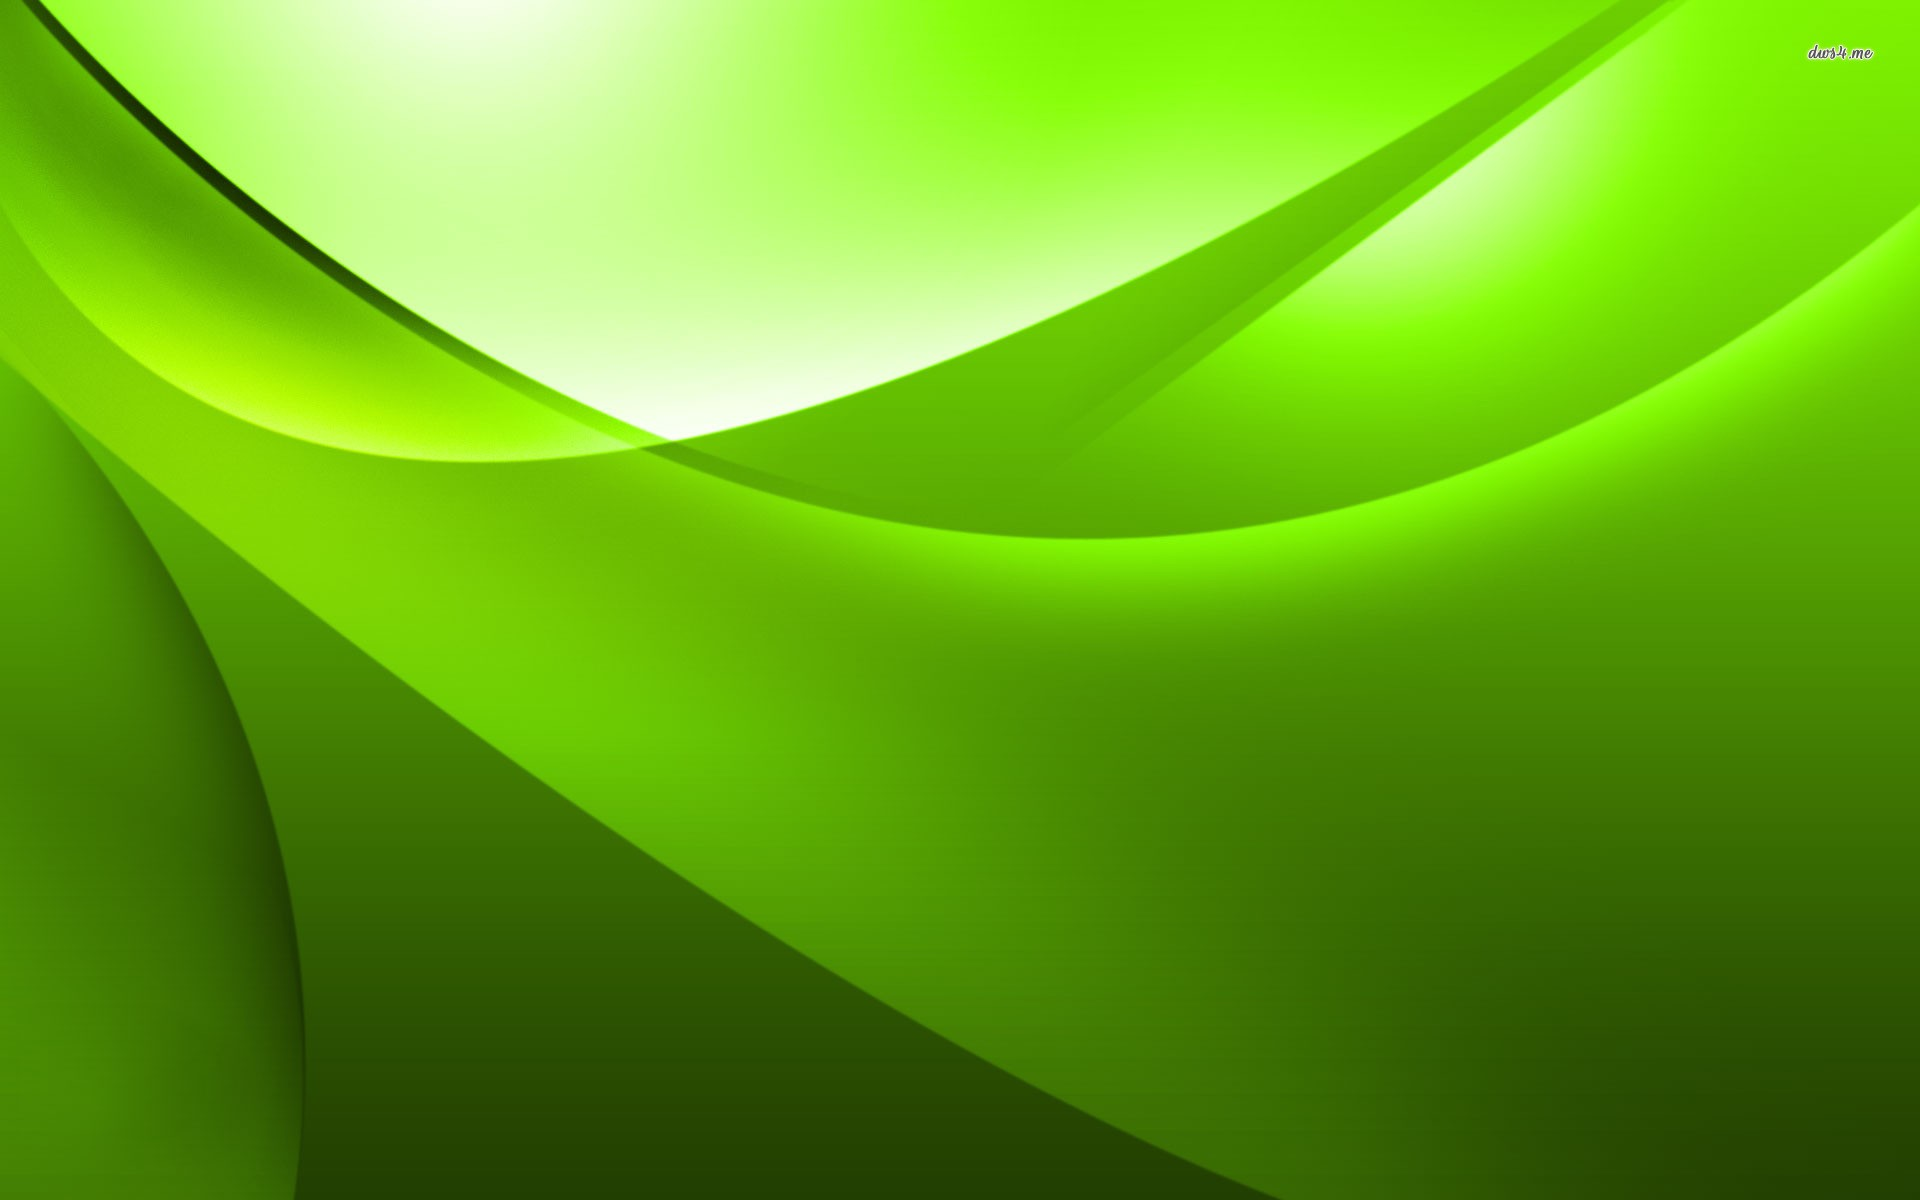 Green Abstract wallpaper ·① Download free stunning HD ...Green Abstract Wallpaper Hd